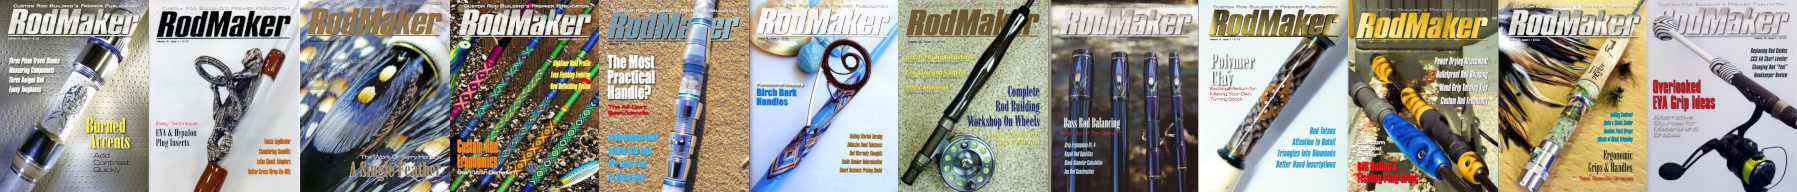 rodmaker magazine sample issues